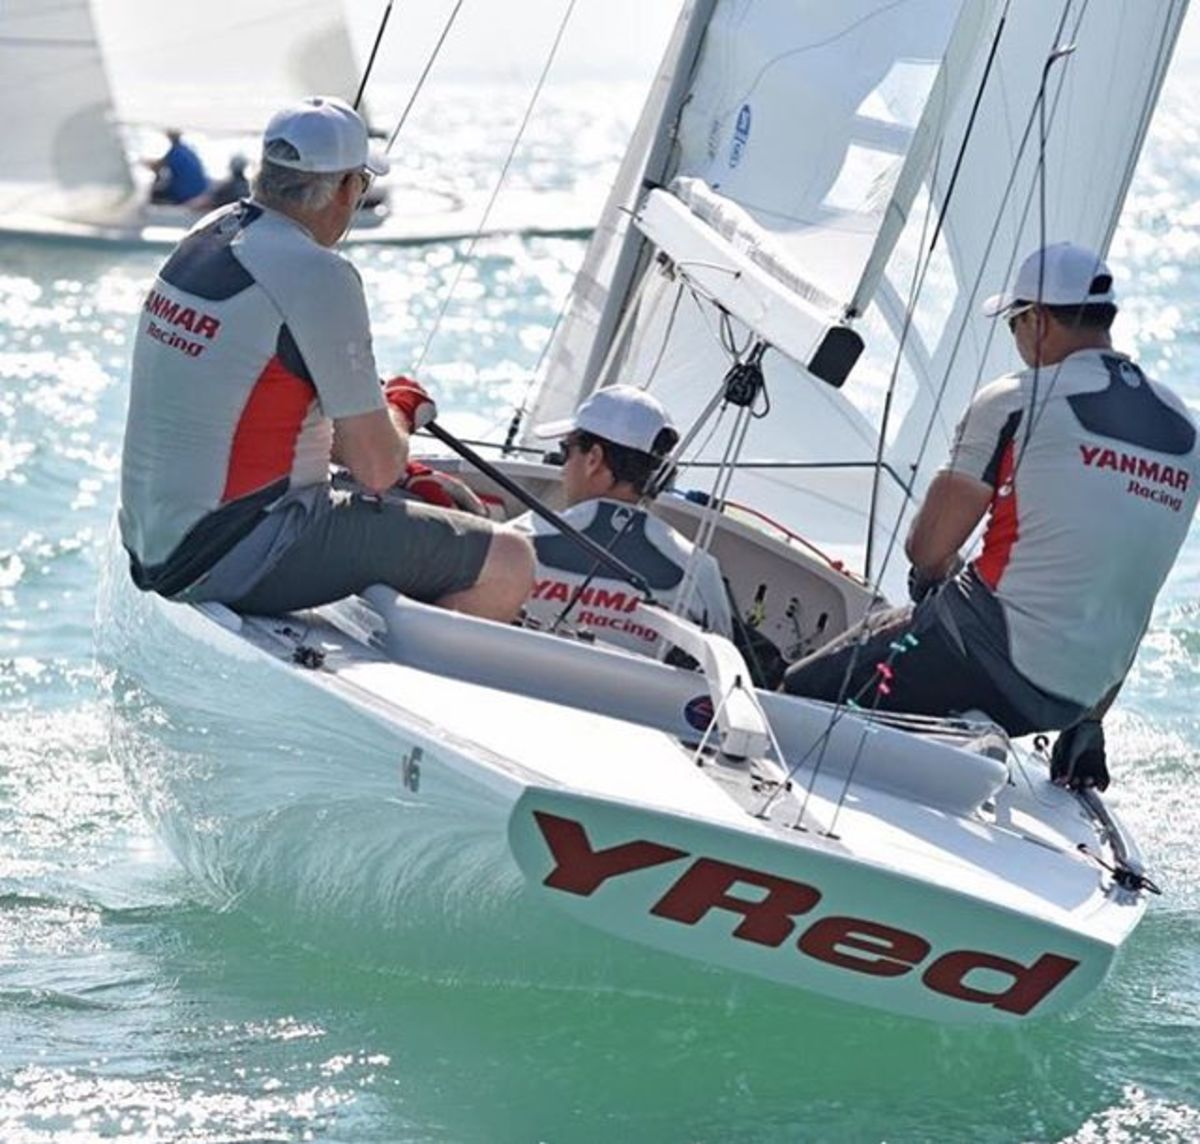 The new Yanmar Racing Team will compete in different events around the world.